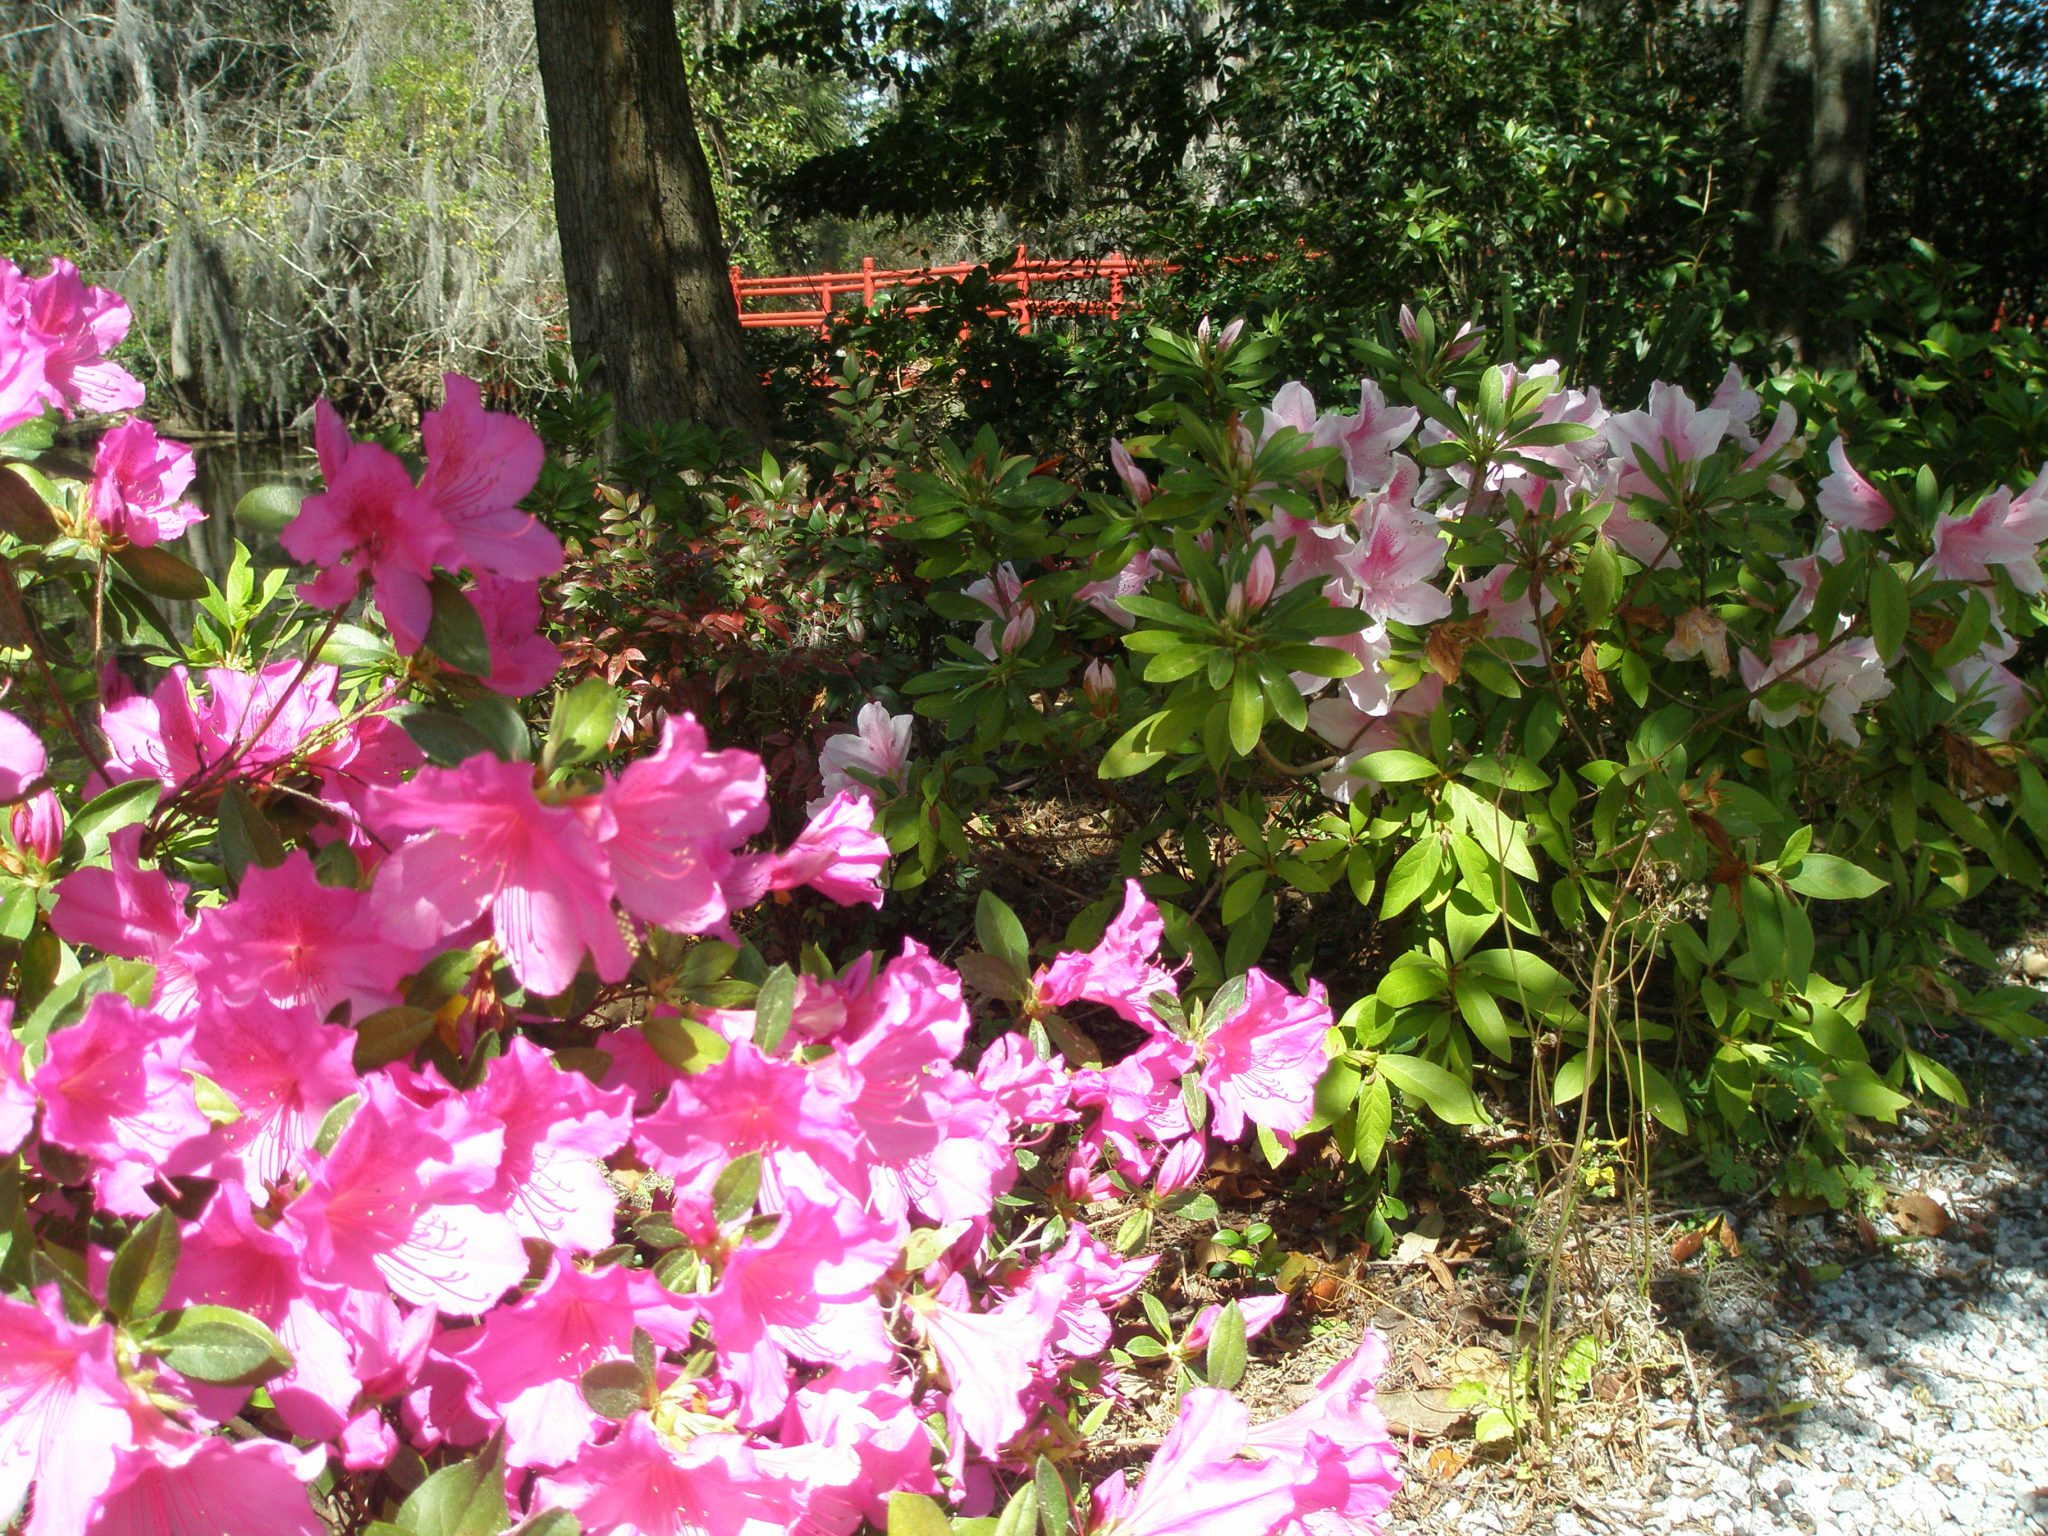 Some Azaleas were still in bloom